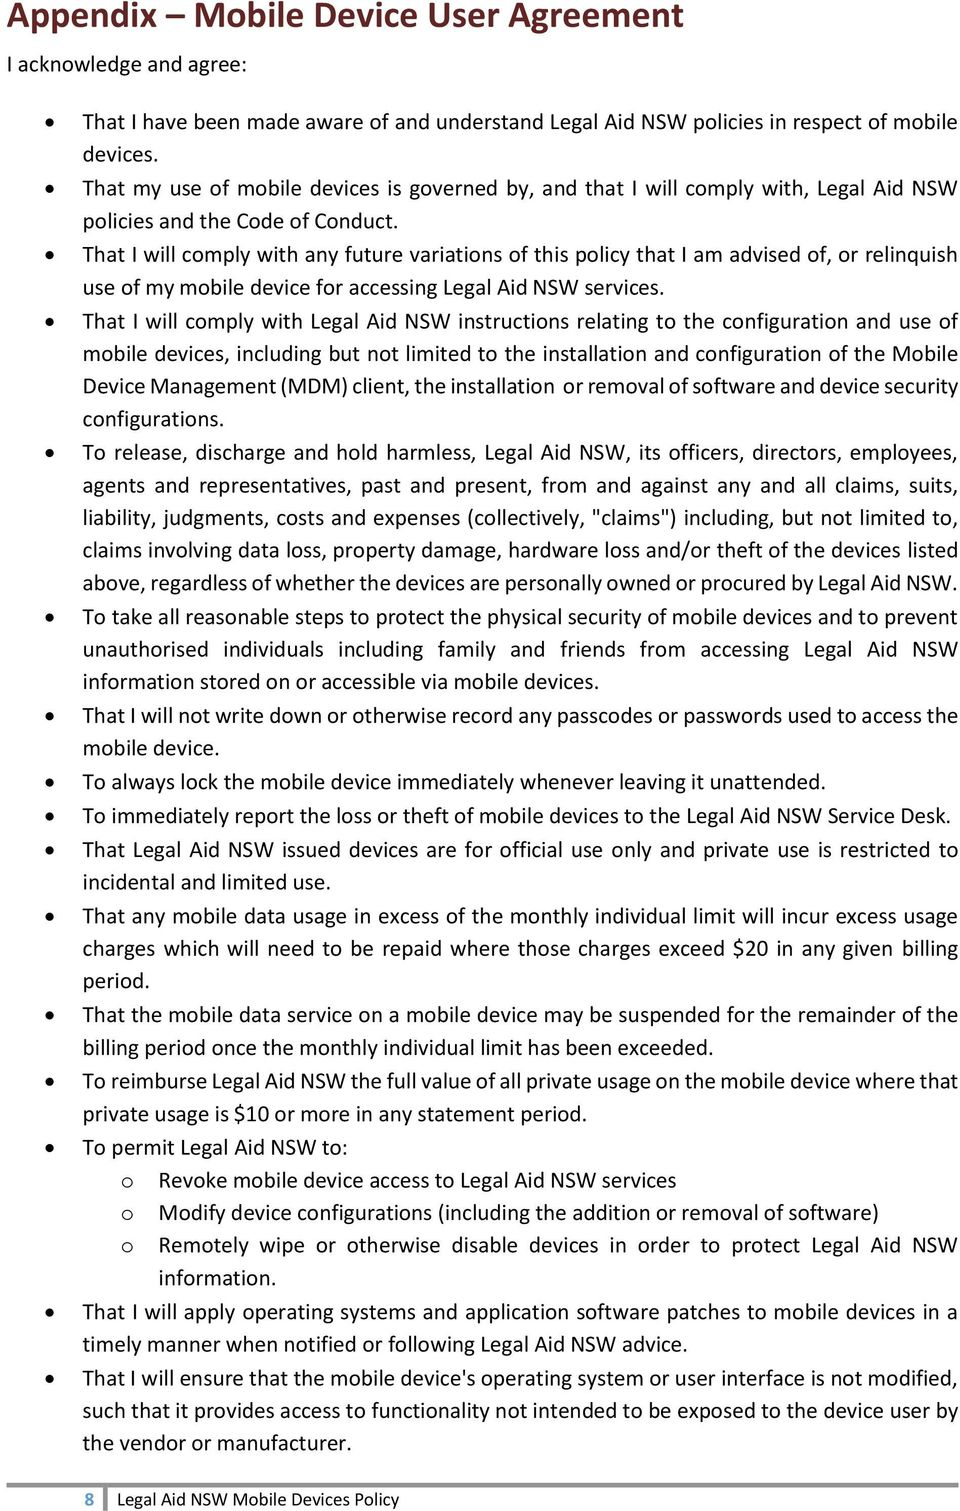 That I will comply with any future variations of this policy that I am advised of, or relinquish use of my mobile device for accessing Legal Aid NSW services.